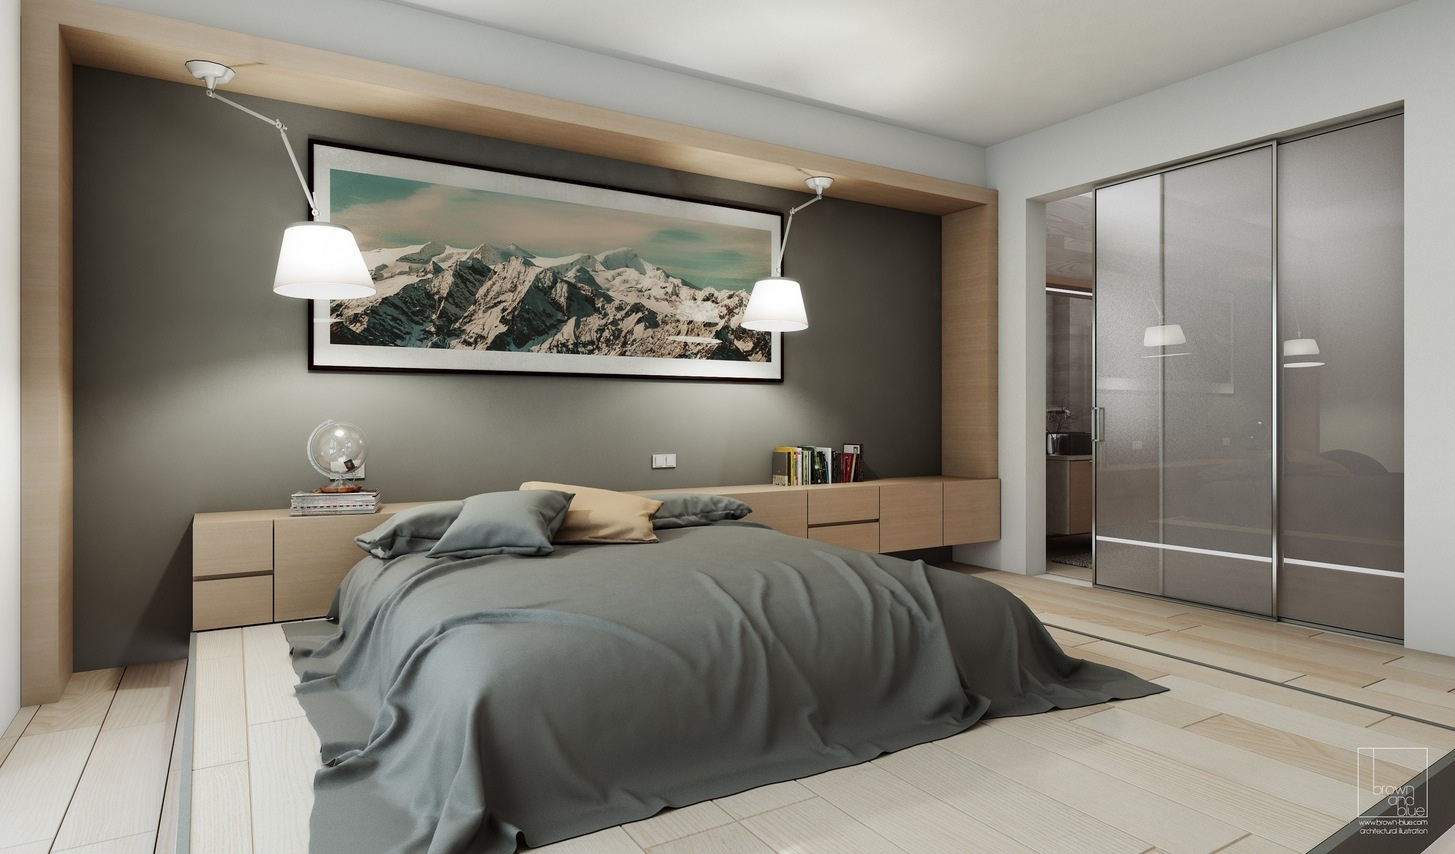 Designer Bedroom Ideas Stylish Bedroom Designs With Beautiful Creative Details